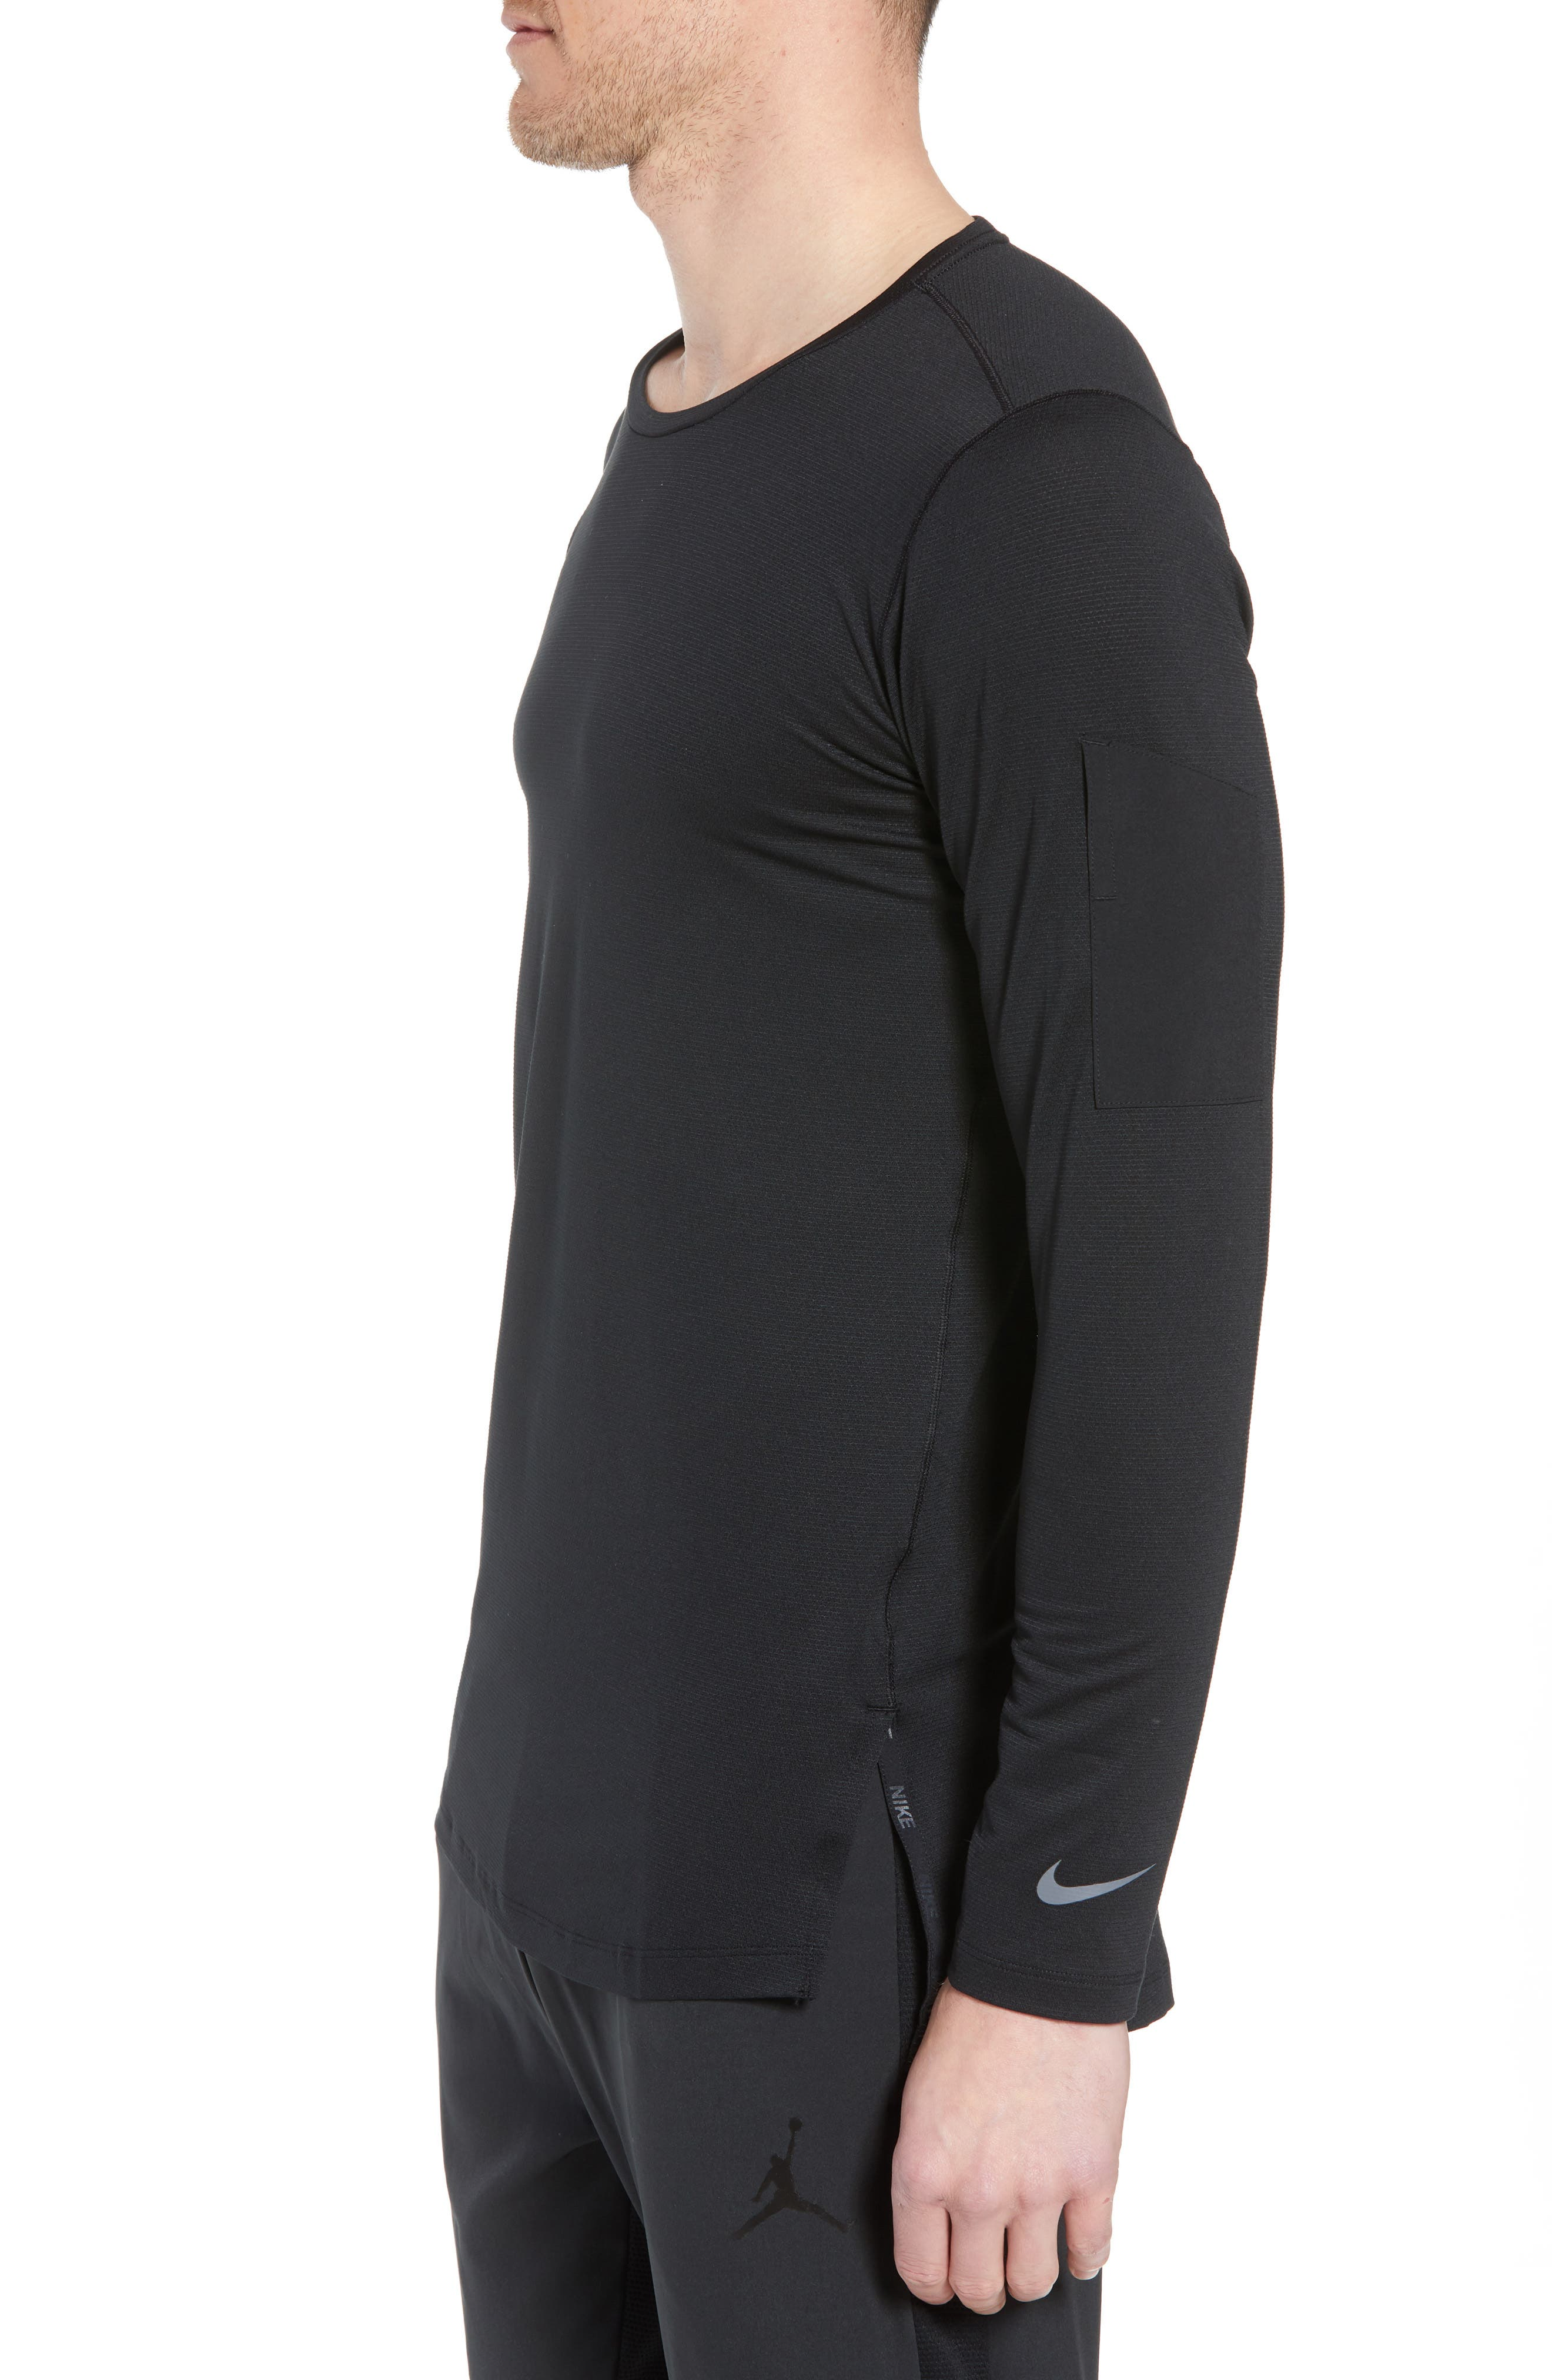 Pro Utility Fitted Training Top,                             Alternate thumbnail 3, color,                             BLACK/ BLACK